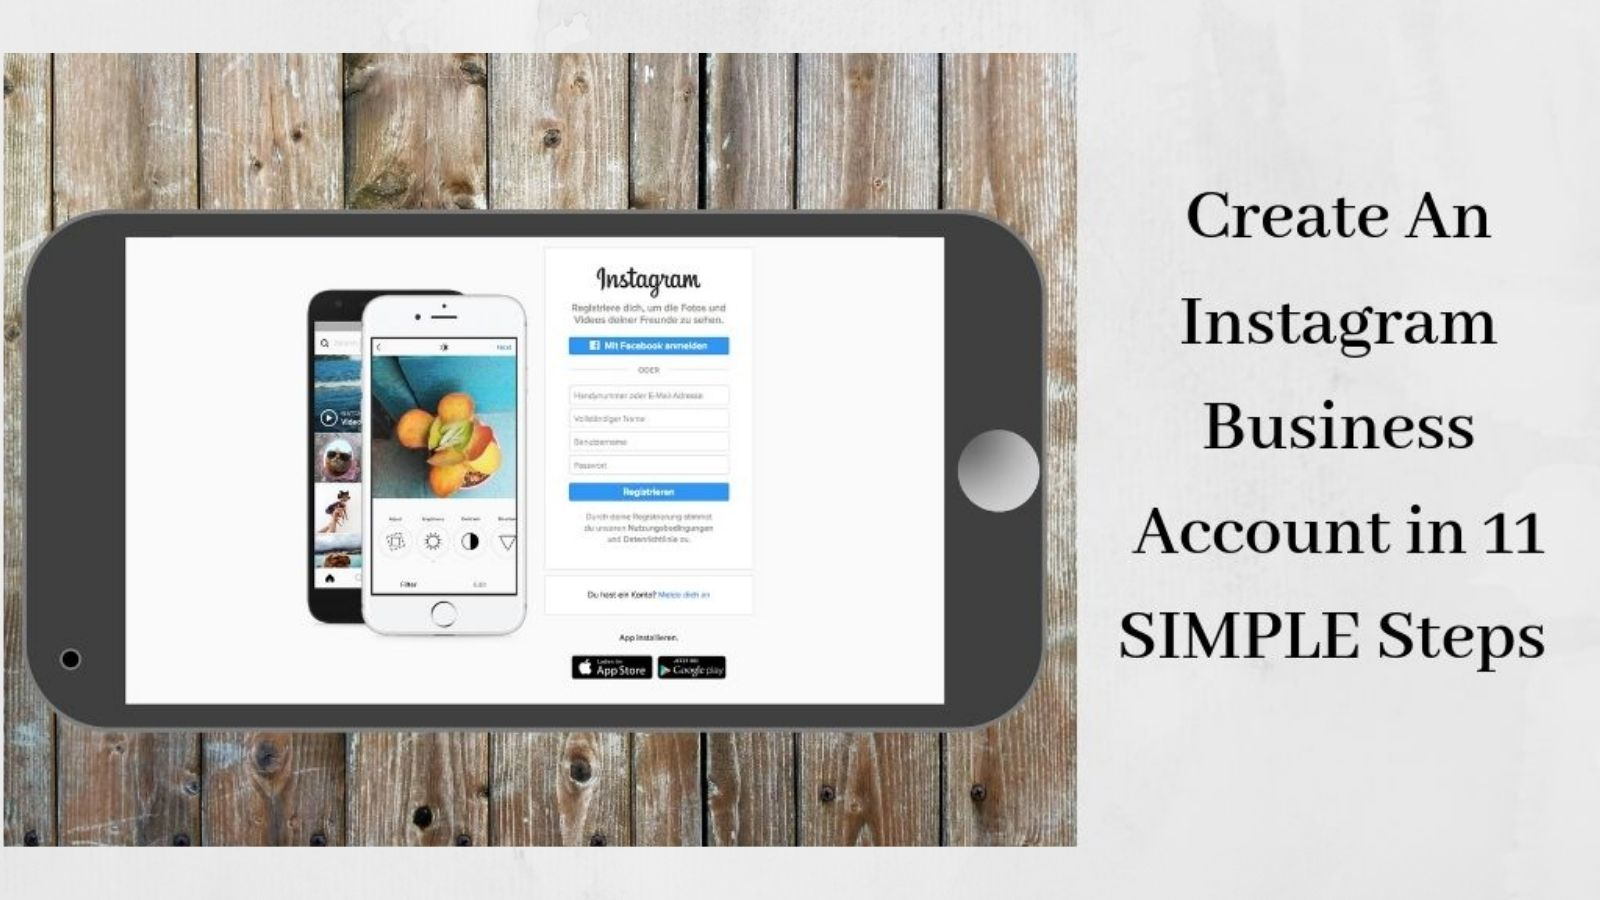 Create An Instagram Business Account - Smartphone With IG